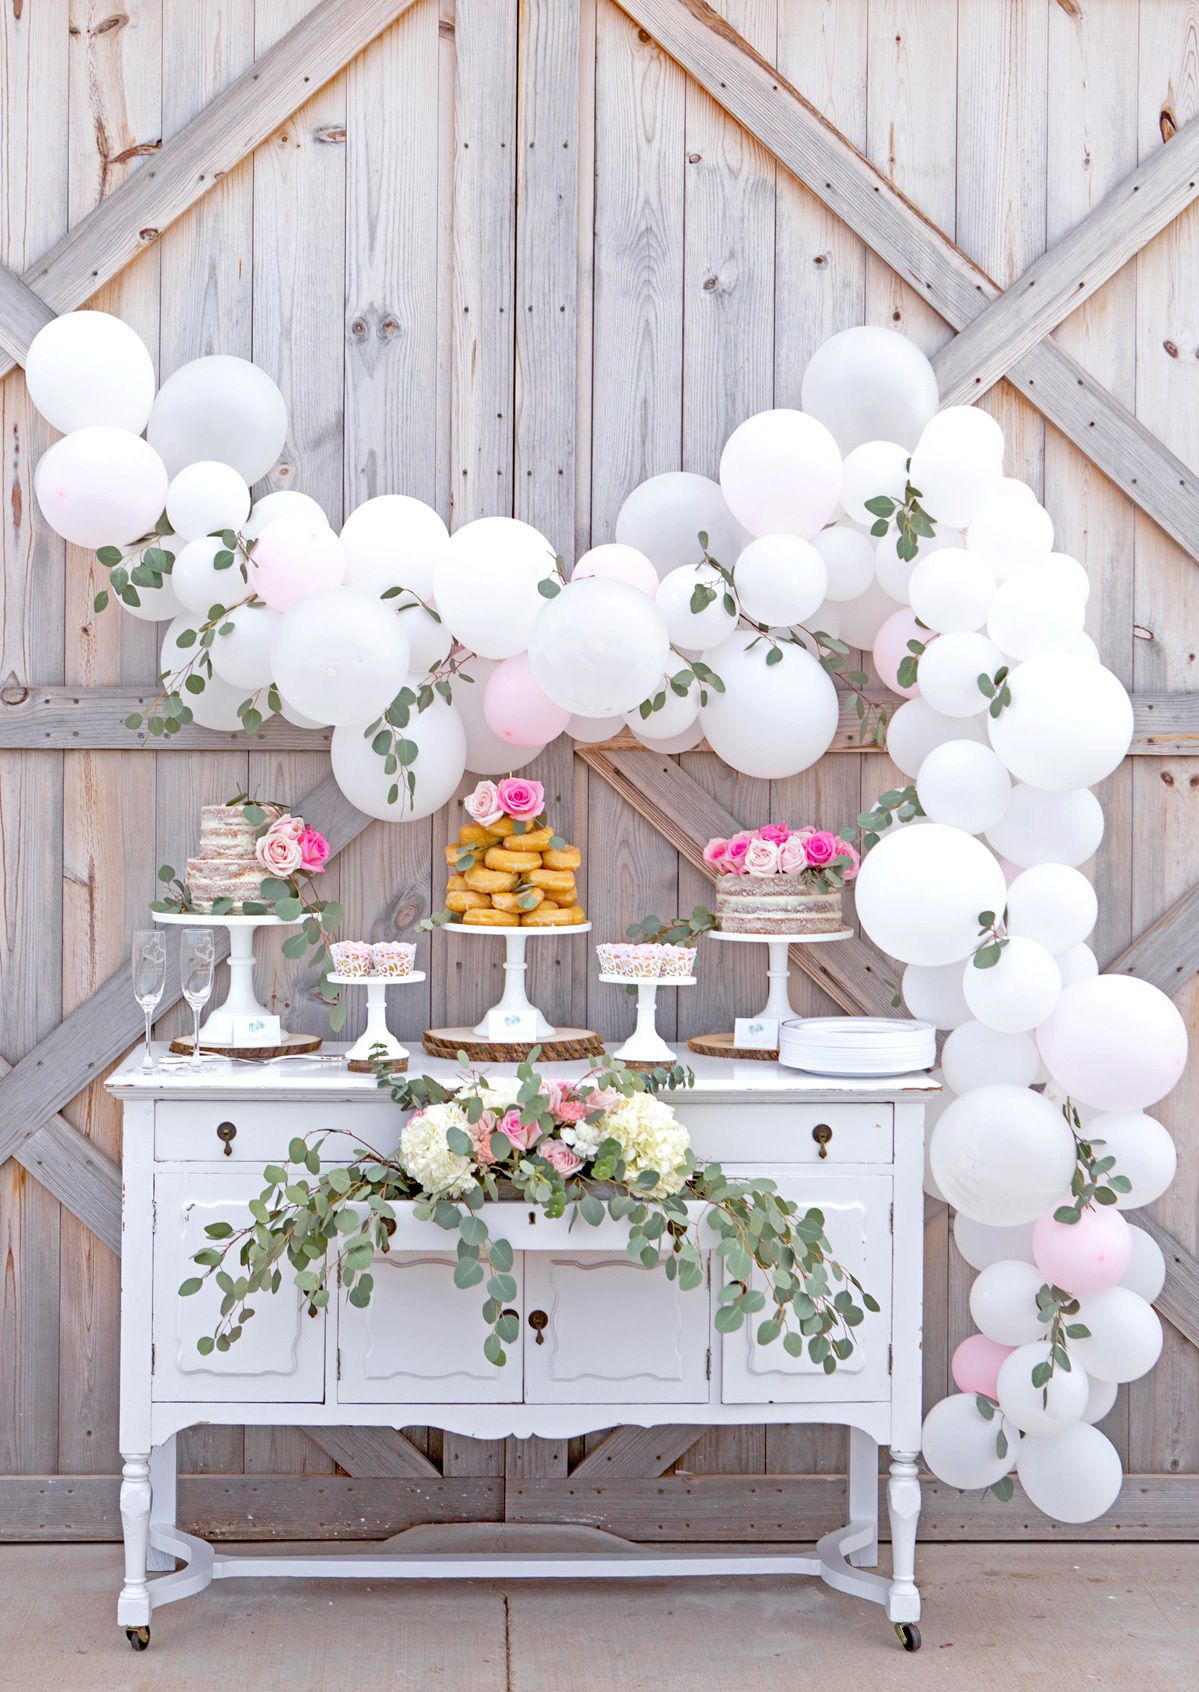 Trend Alert: 20 #PrettyPerfect Balloon Decor Ideas | Pinterest ...